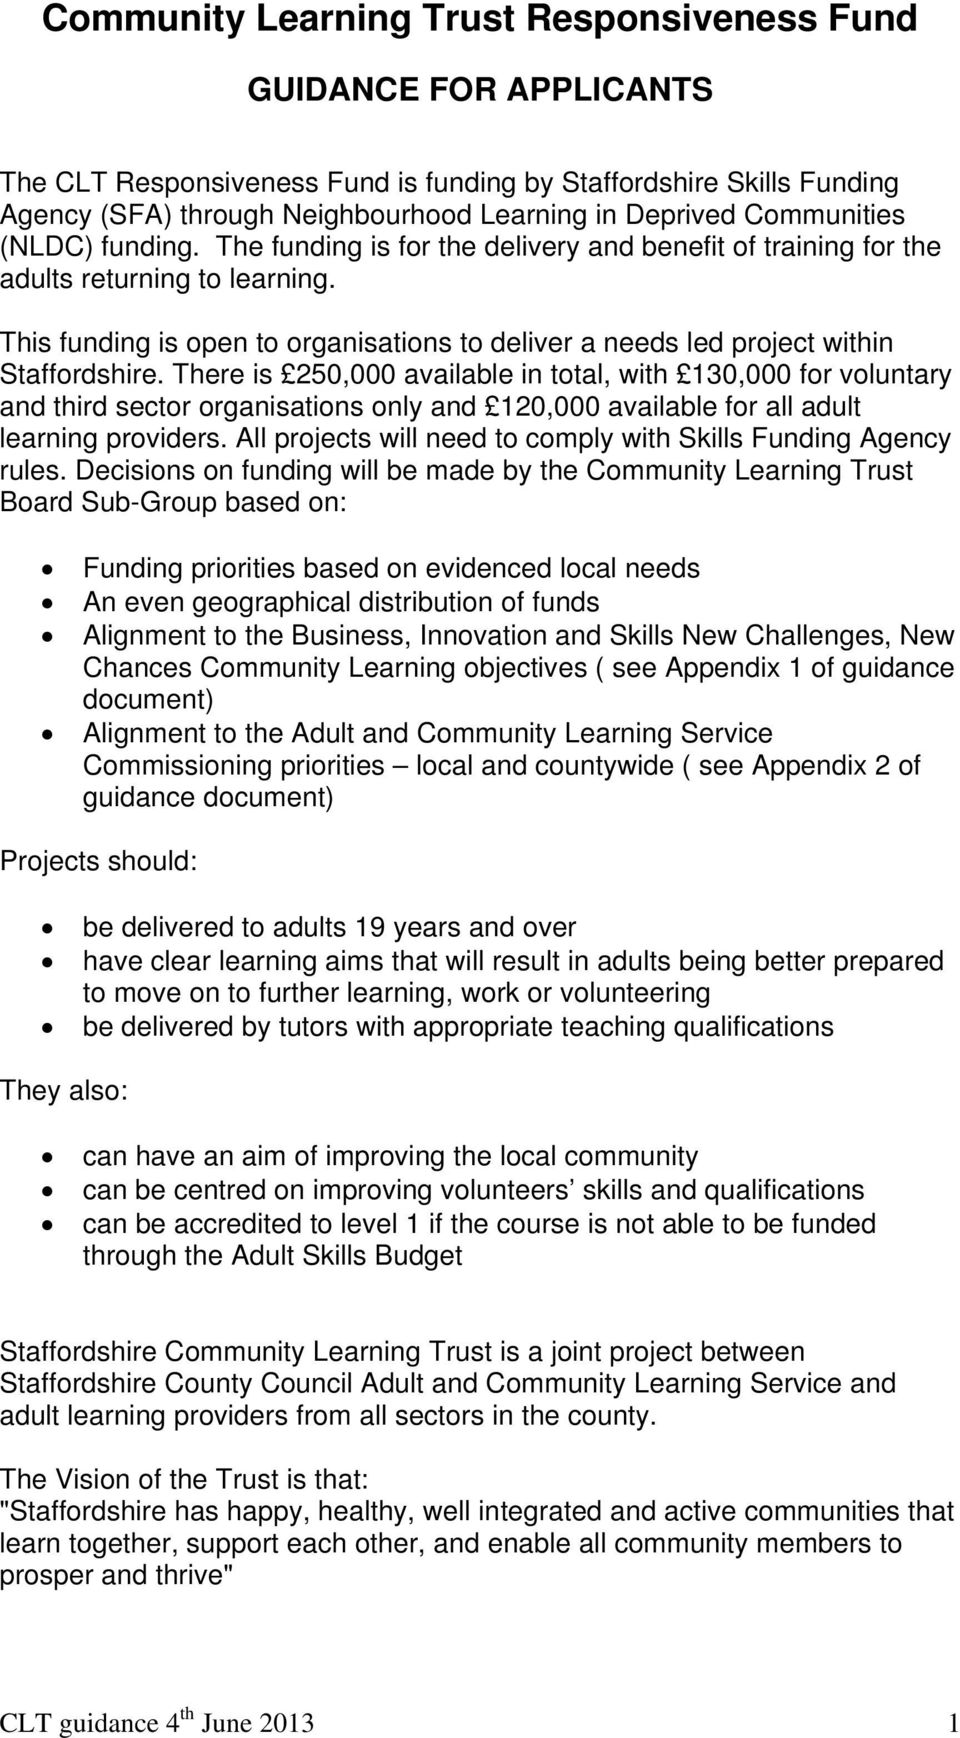 This funding is open to organisations to deliver a needs led project within Staffordshire.